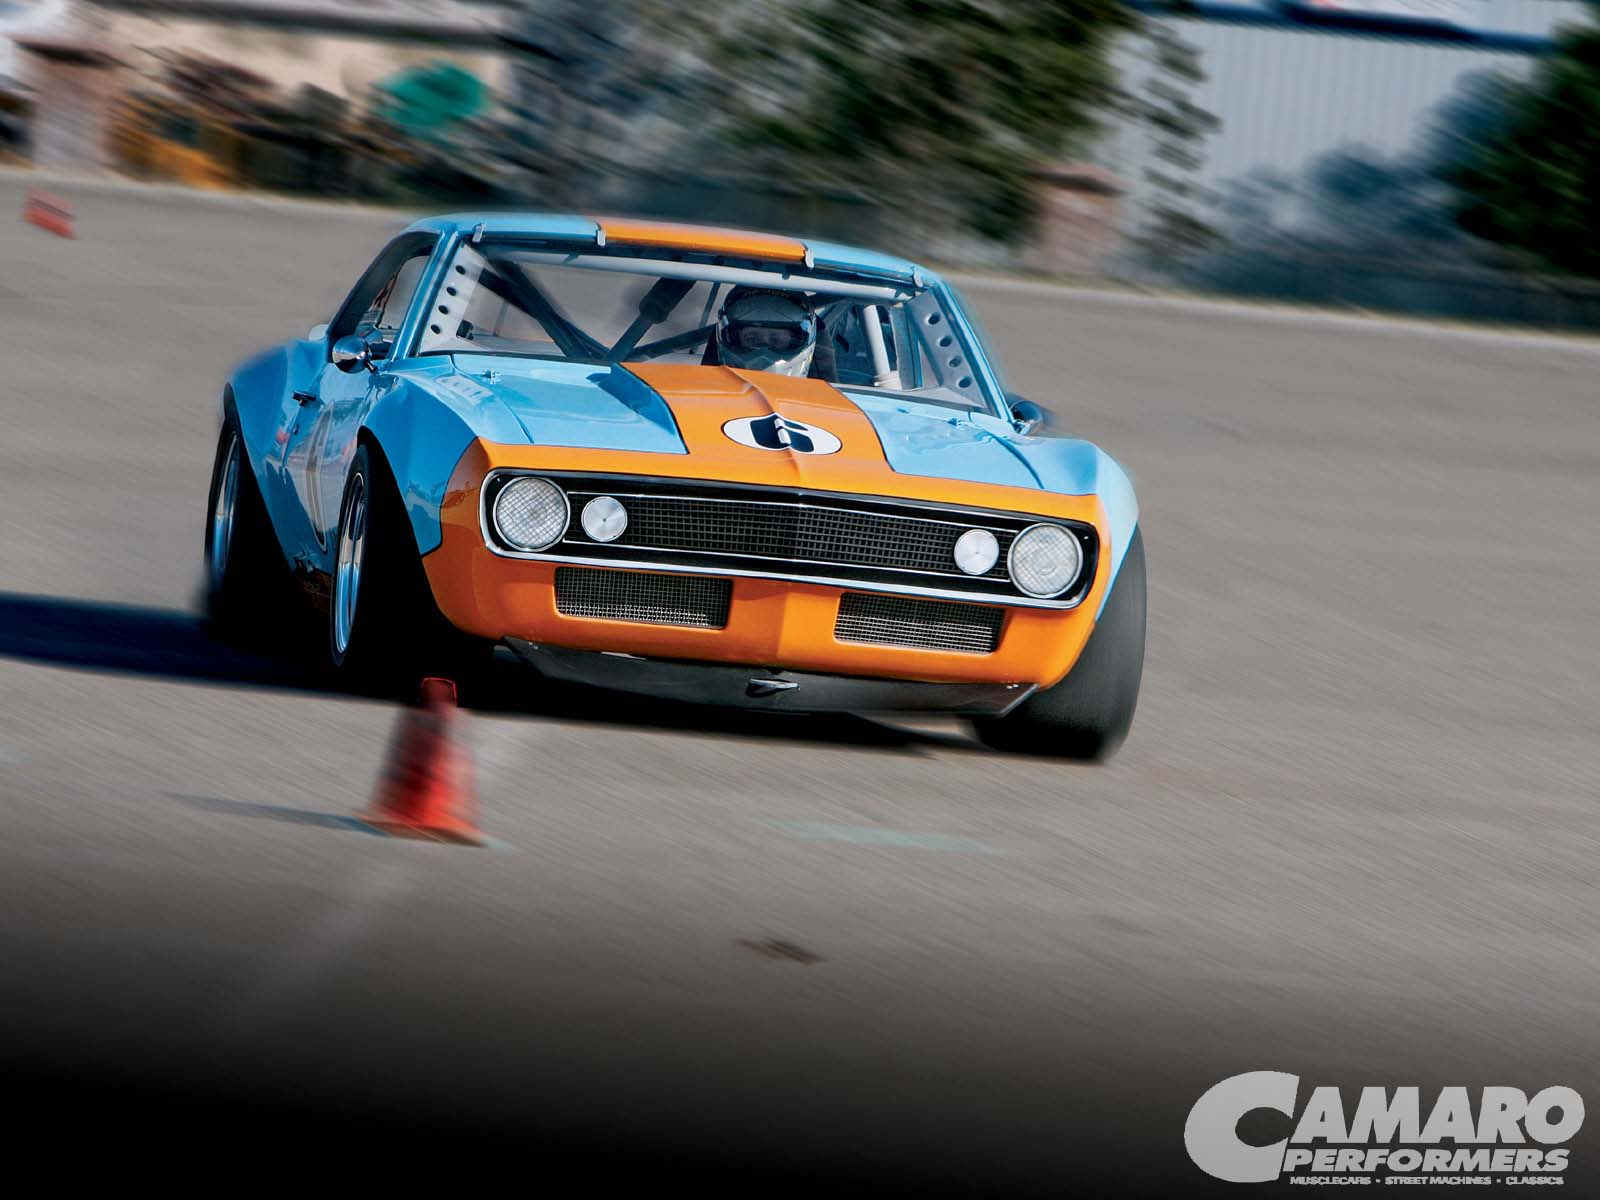 camp-0906-01+1967-camaro-race-car+test-run.jpg